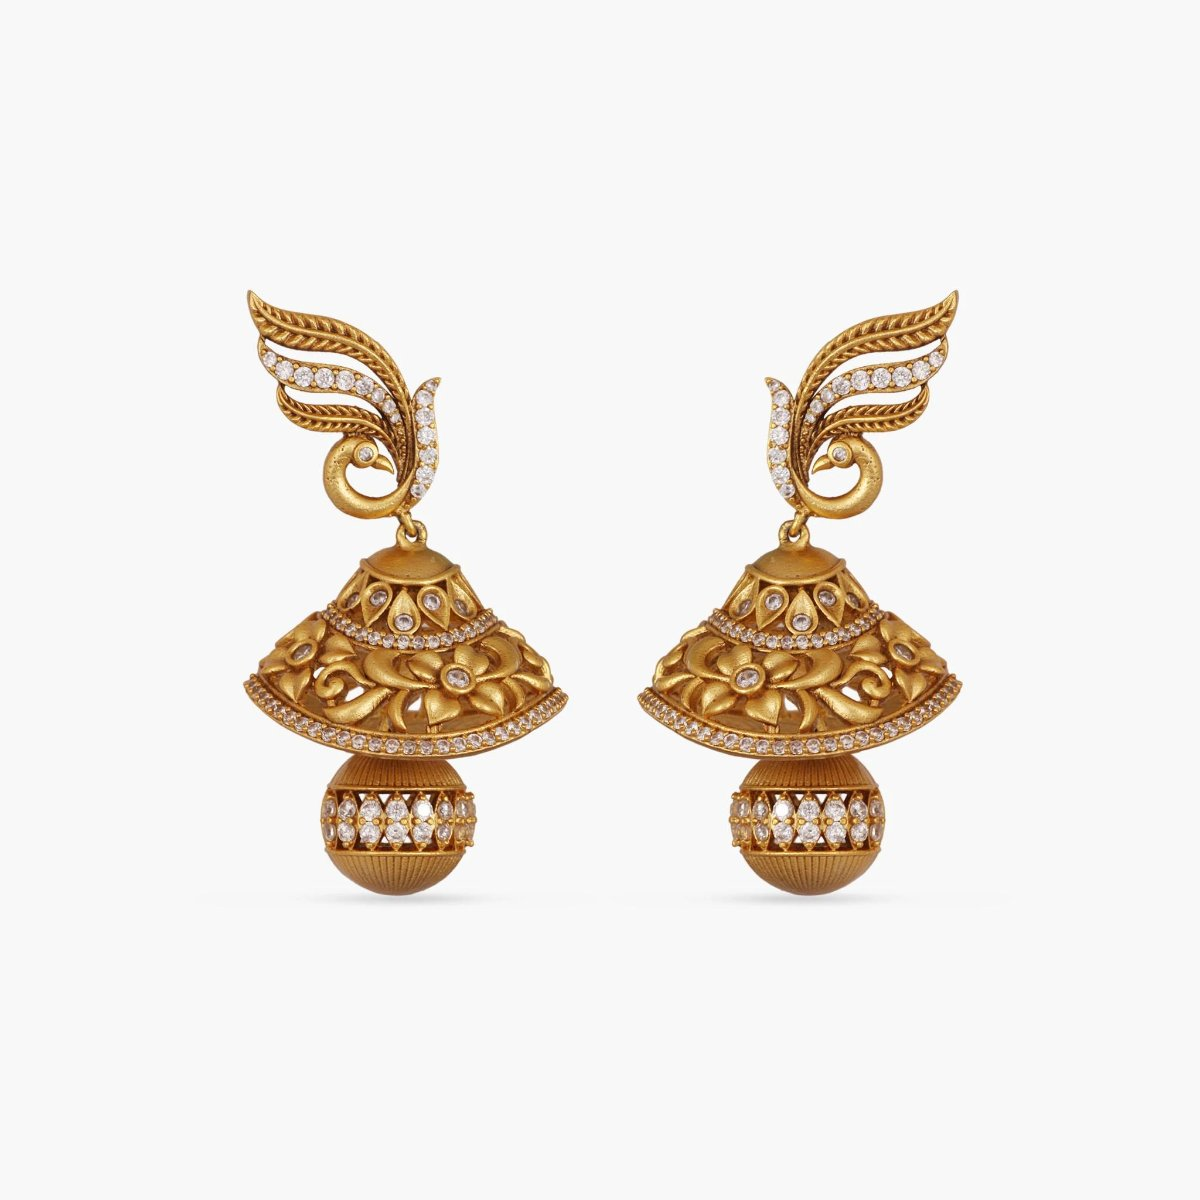 Sumedha Antique Earrings